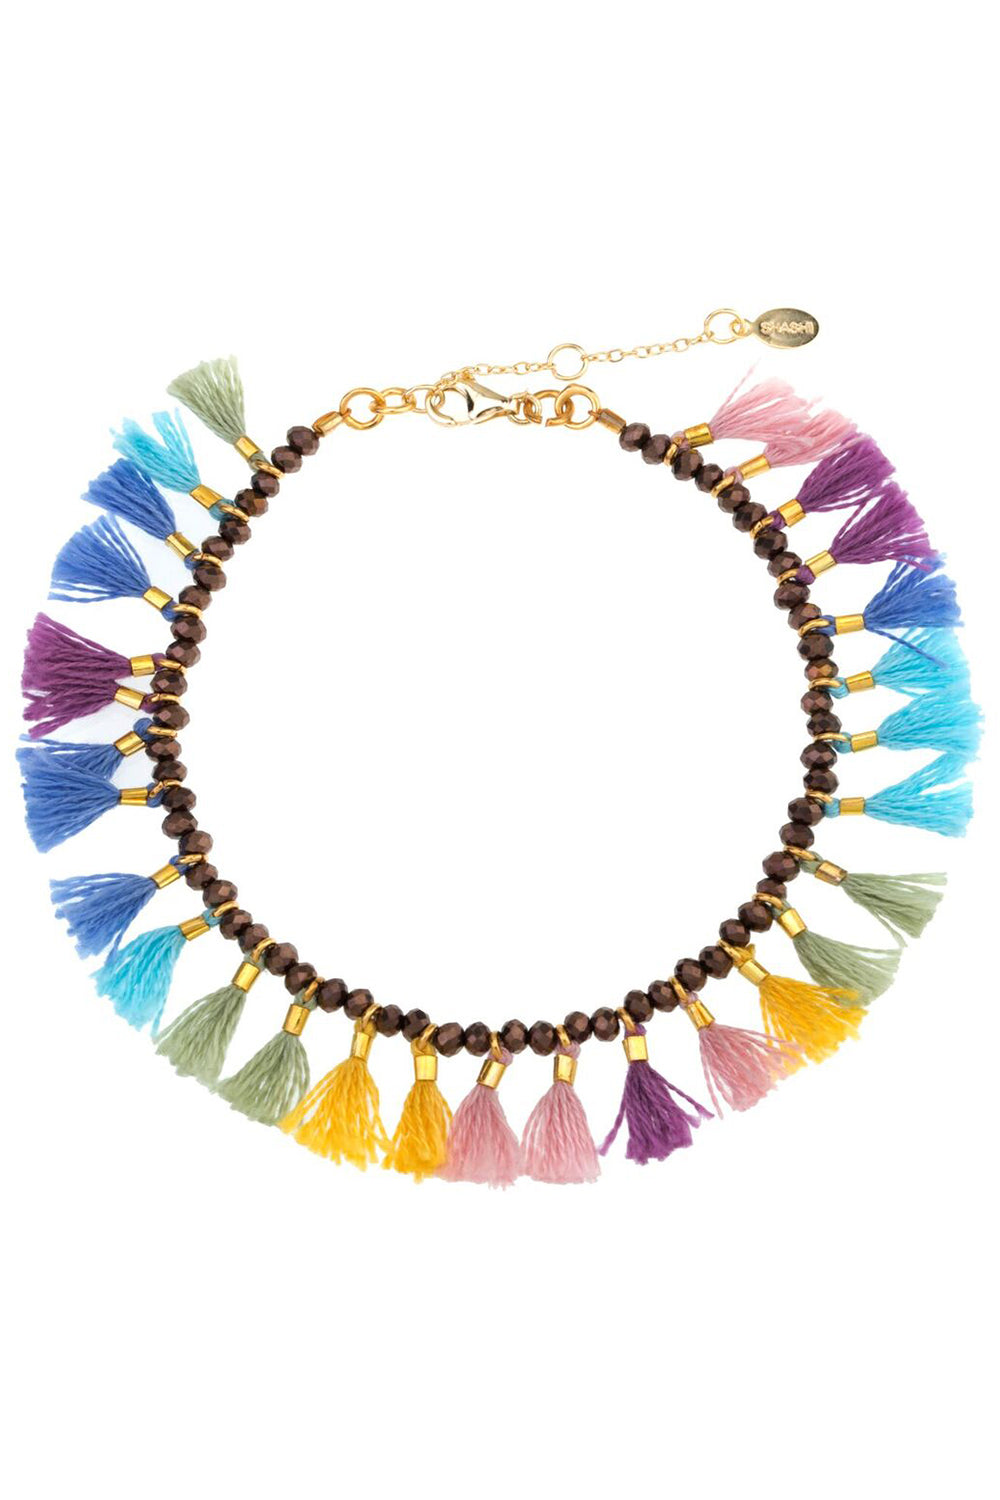 Jaime Bracelet in Multi